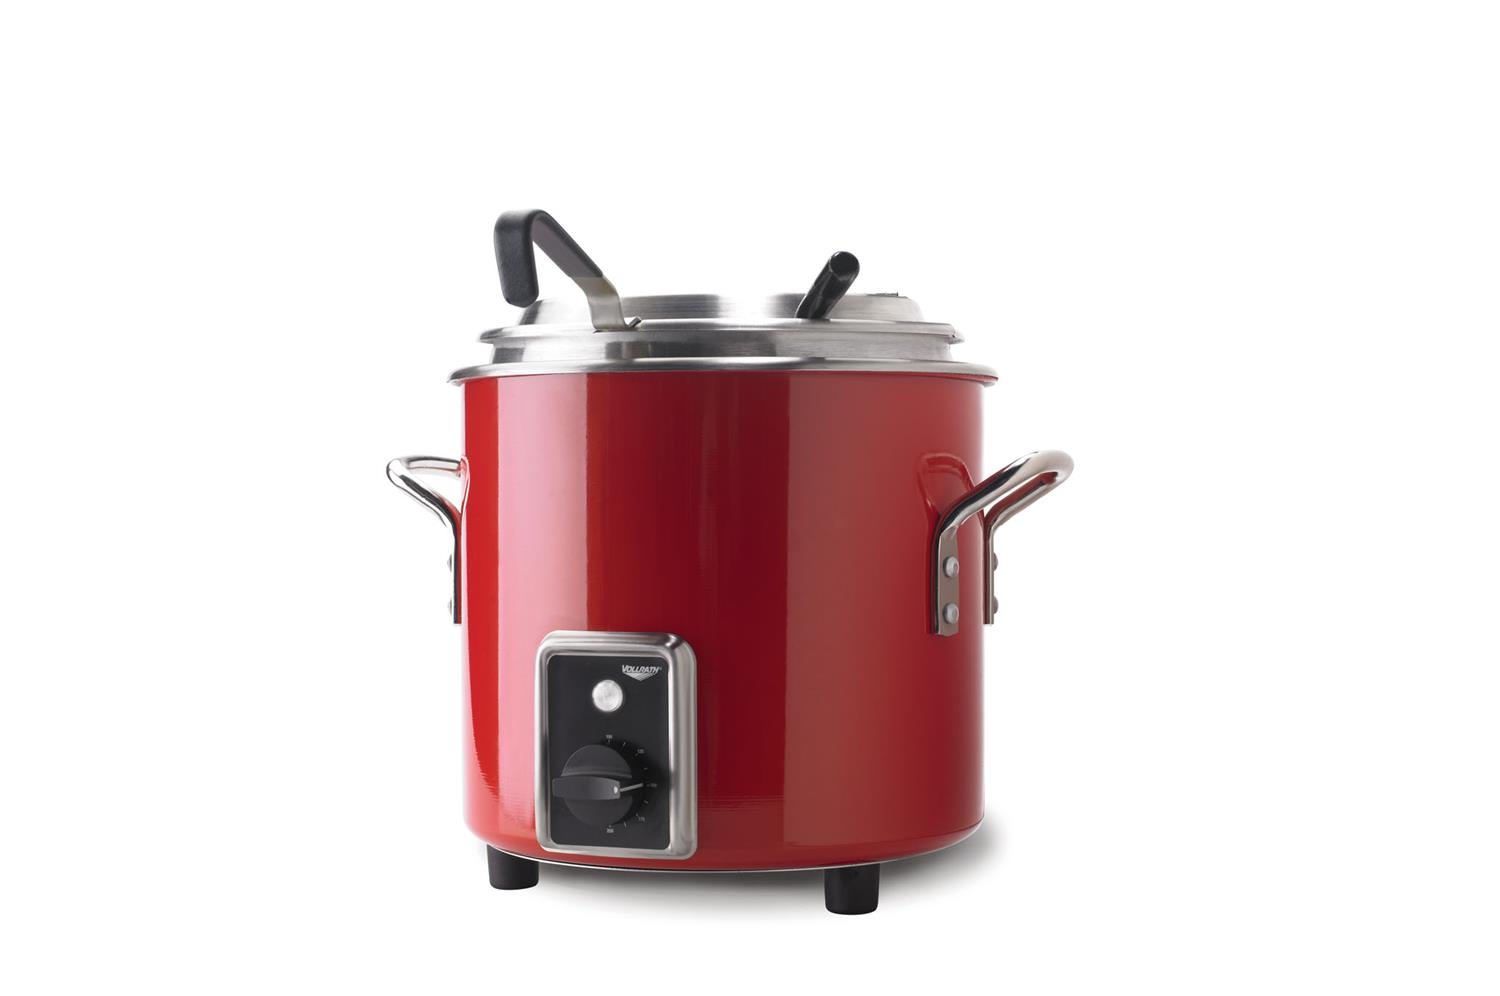 Vollrath 7217755 Retro Stock Pot Kettle Rethermalizer, Fire Engine Red